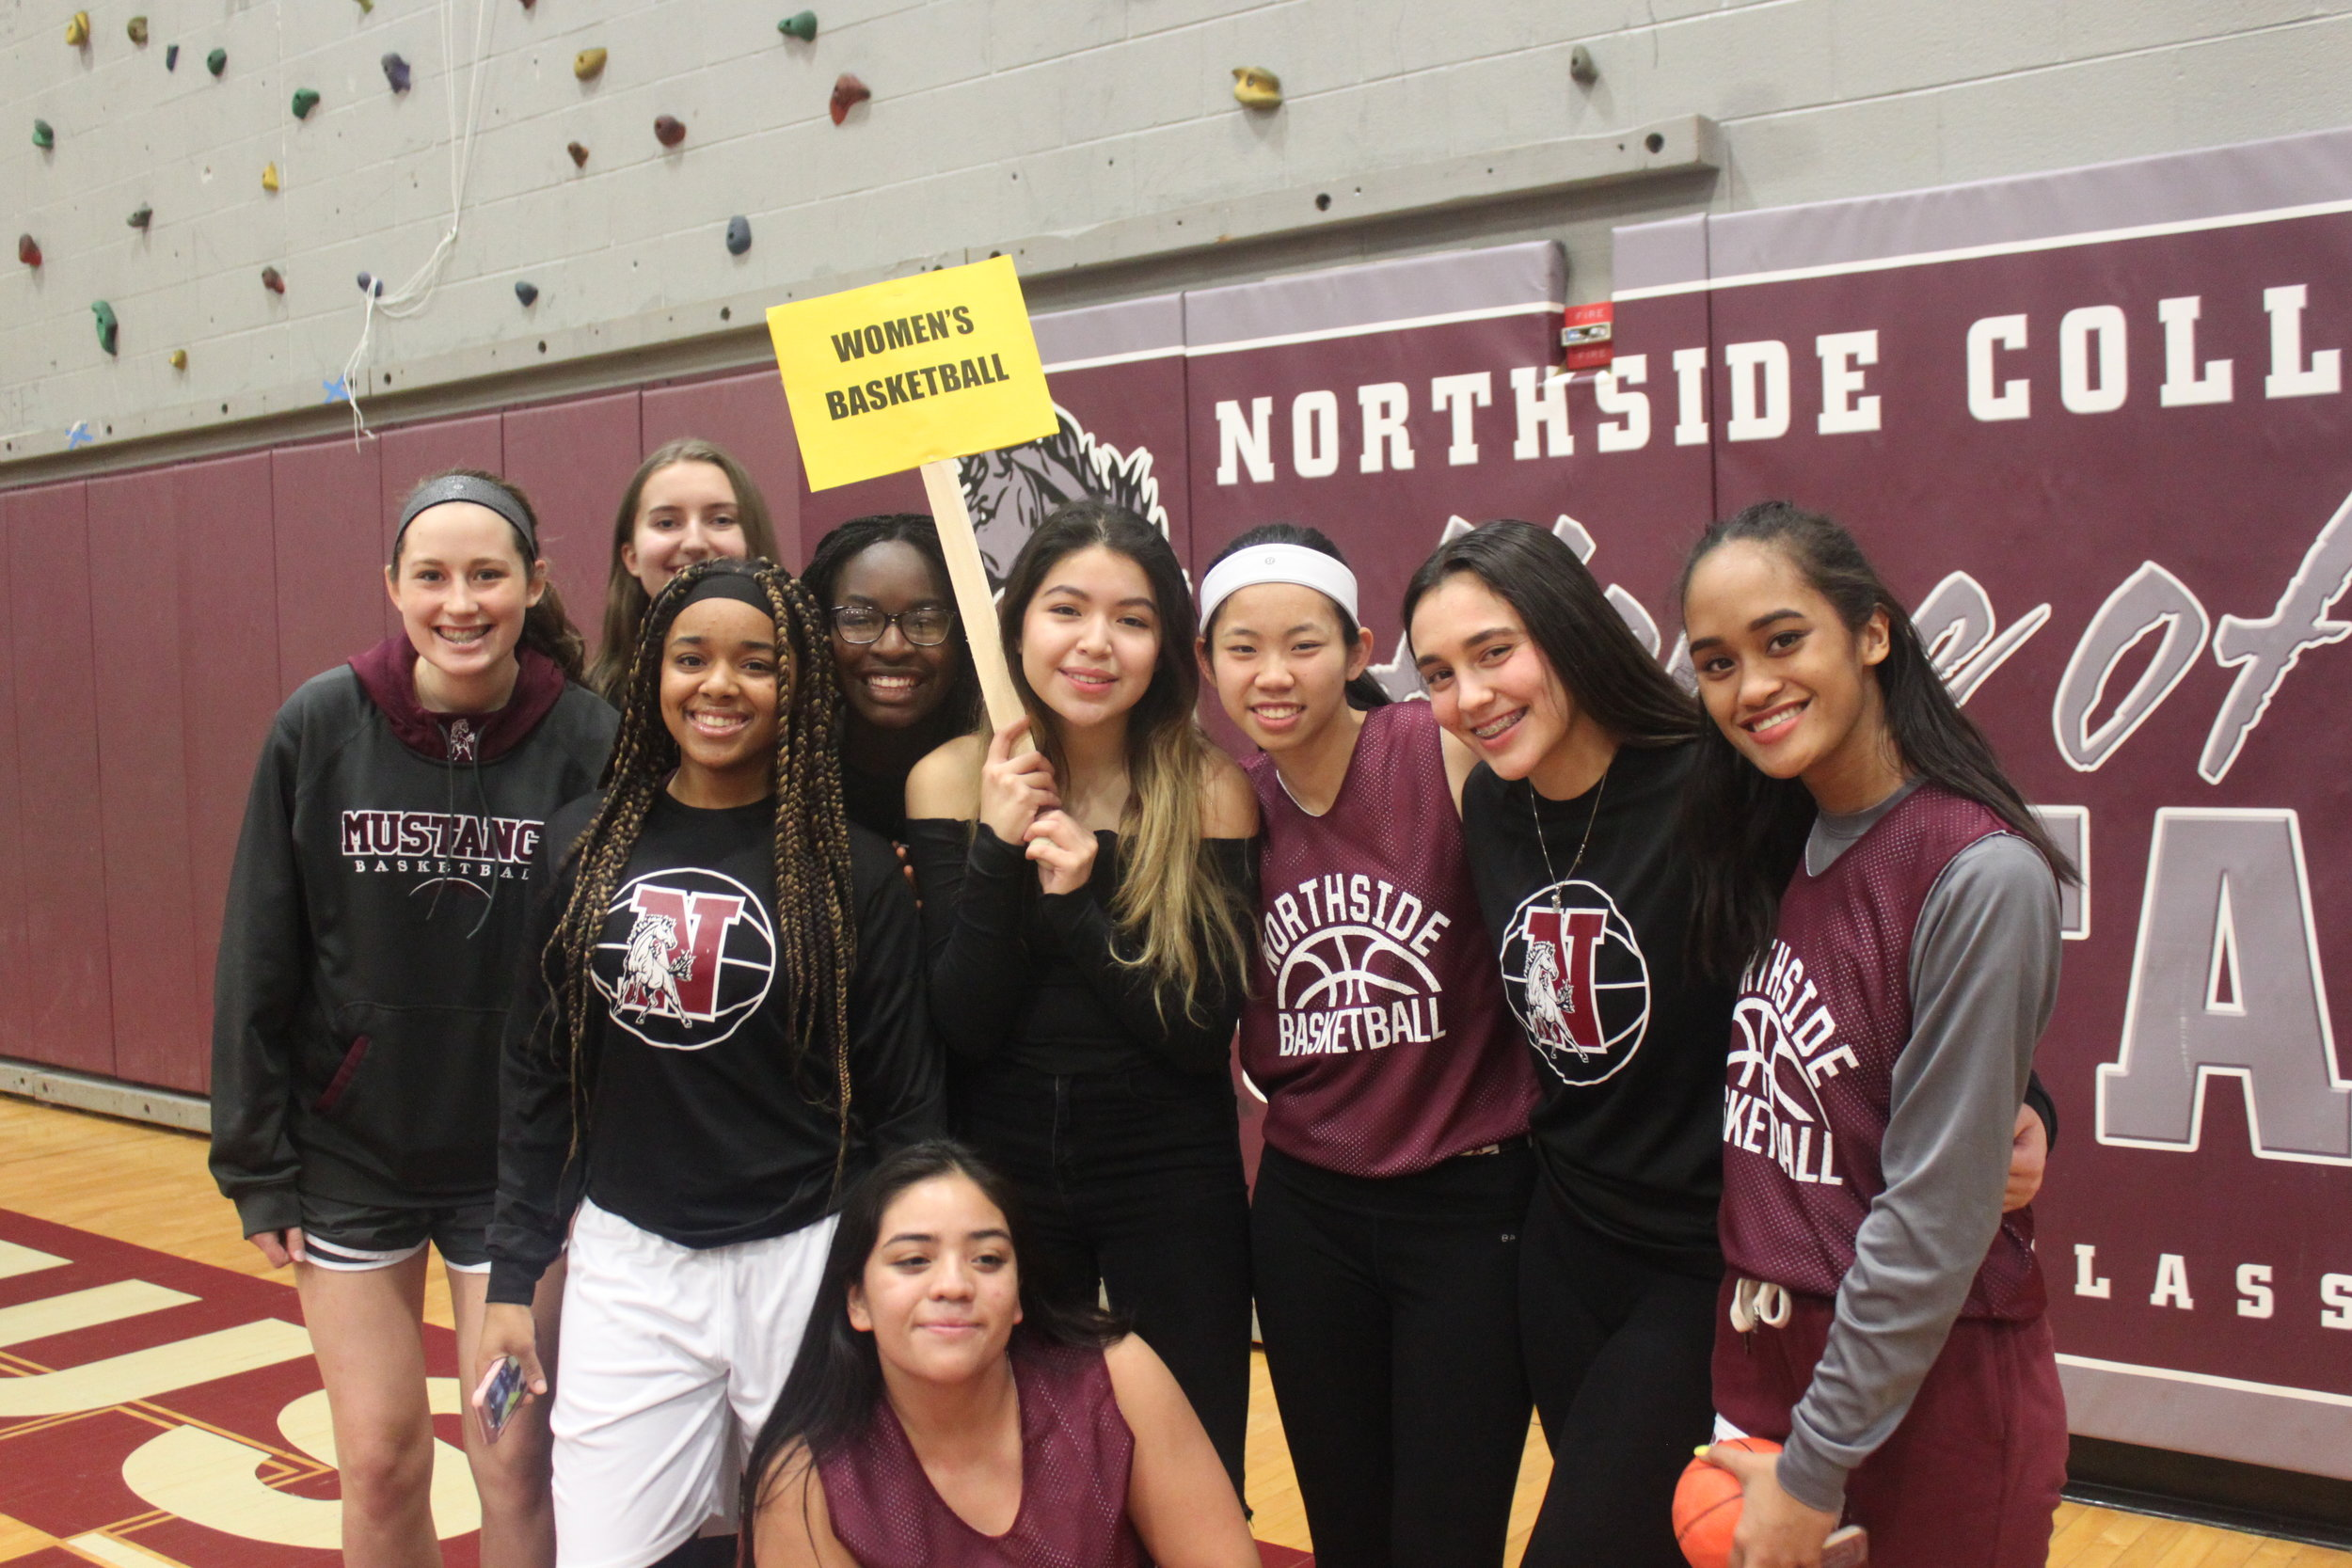 The basketball team smiles in spirit of their homecoming game after school.